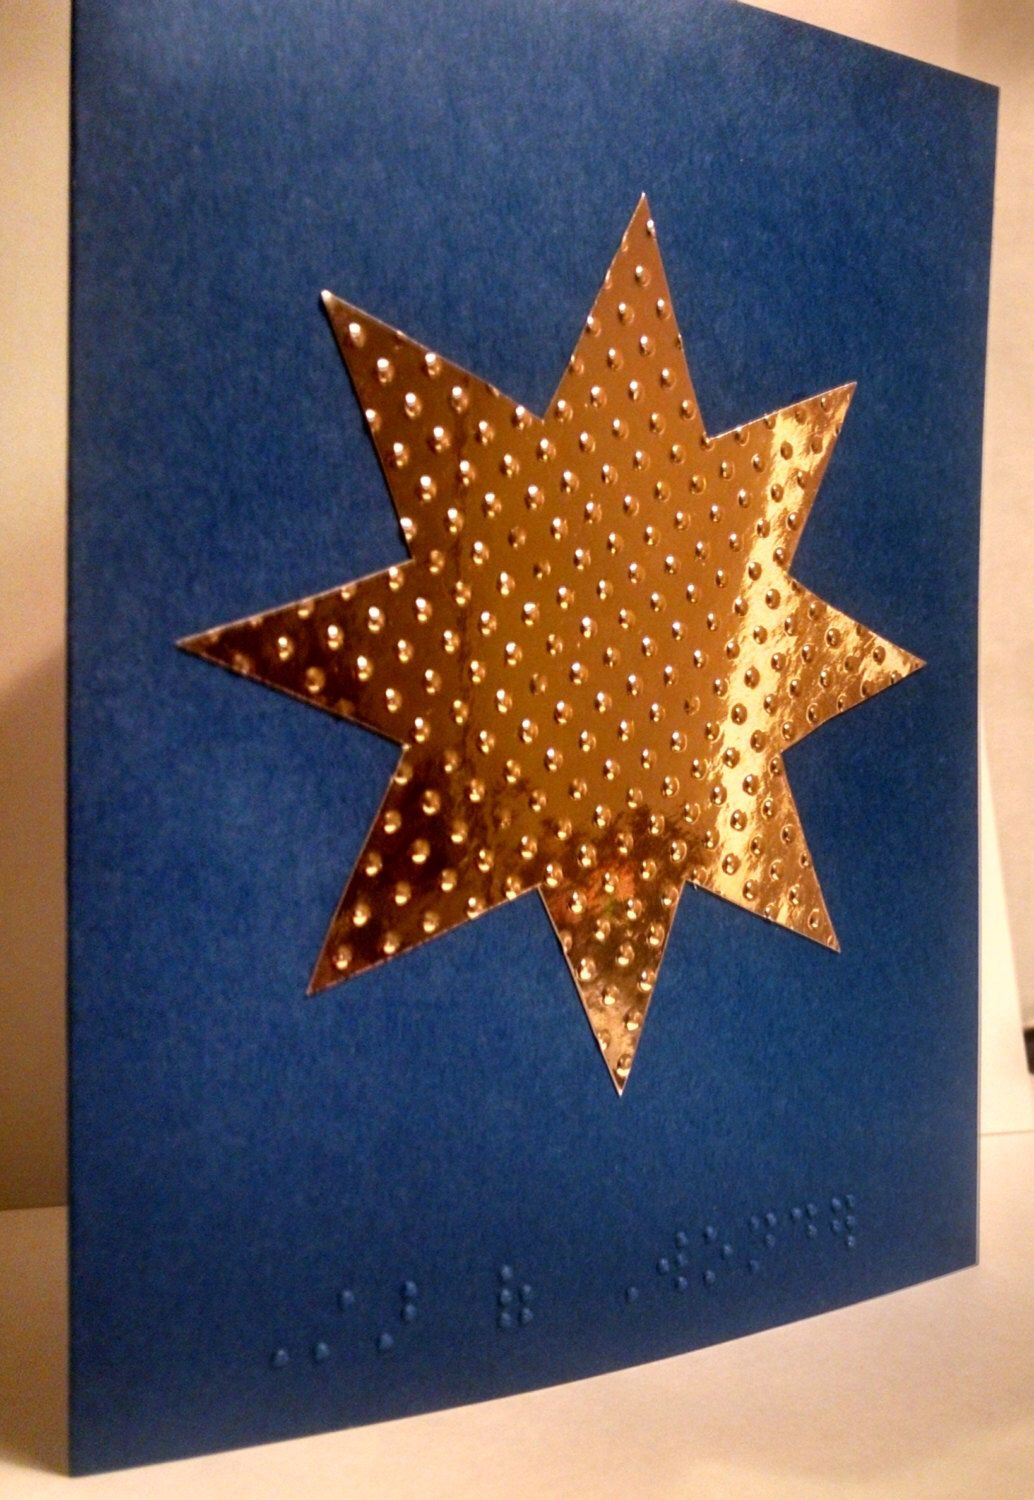 Star of Wonder braille Christmas greeting card | Braille greeting ...